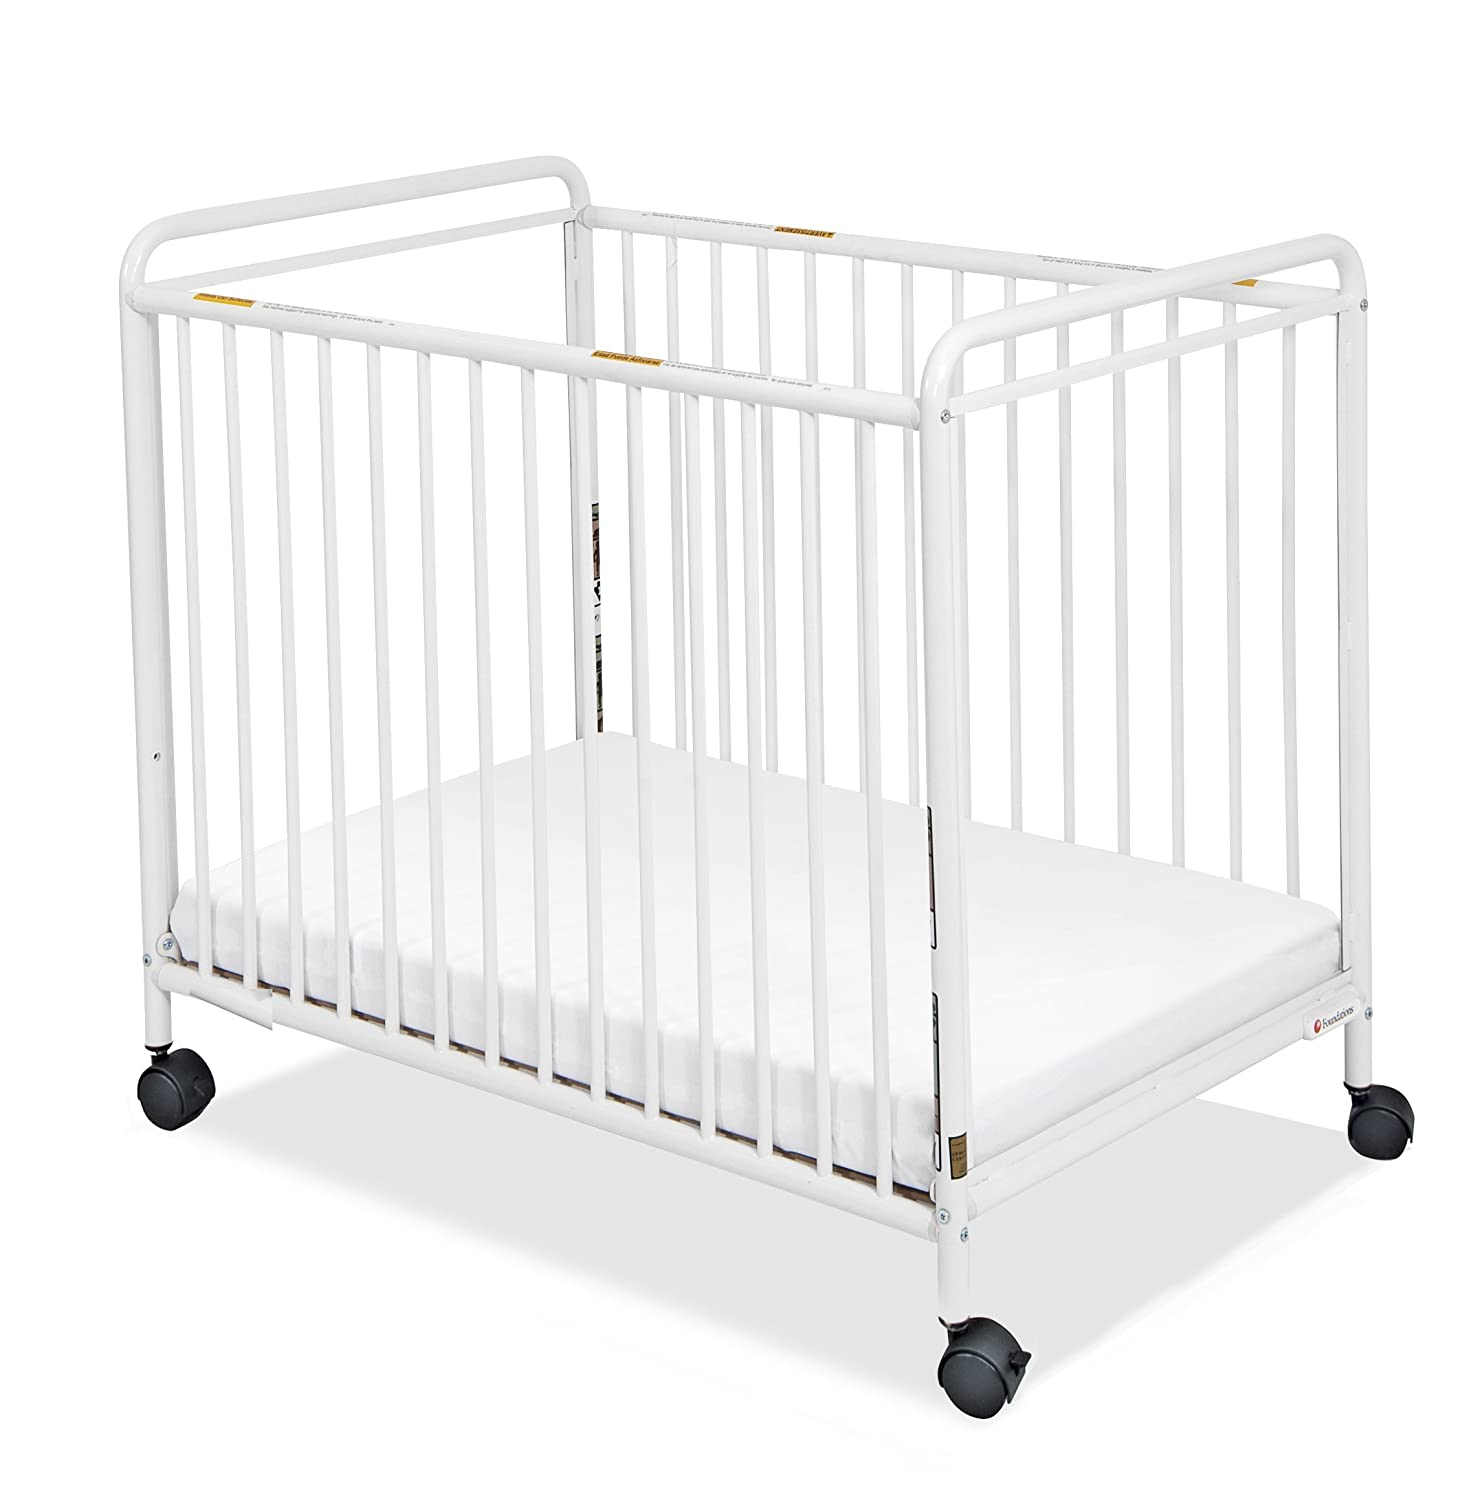 Evacuation crib for sale - Amazon Com Foundations Compact Steel Non Folding Crib Clearview Ends Chelsea Evacuation Cribs Baby